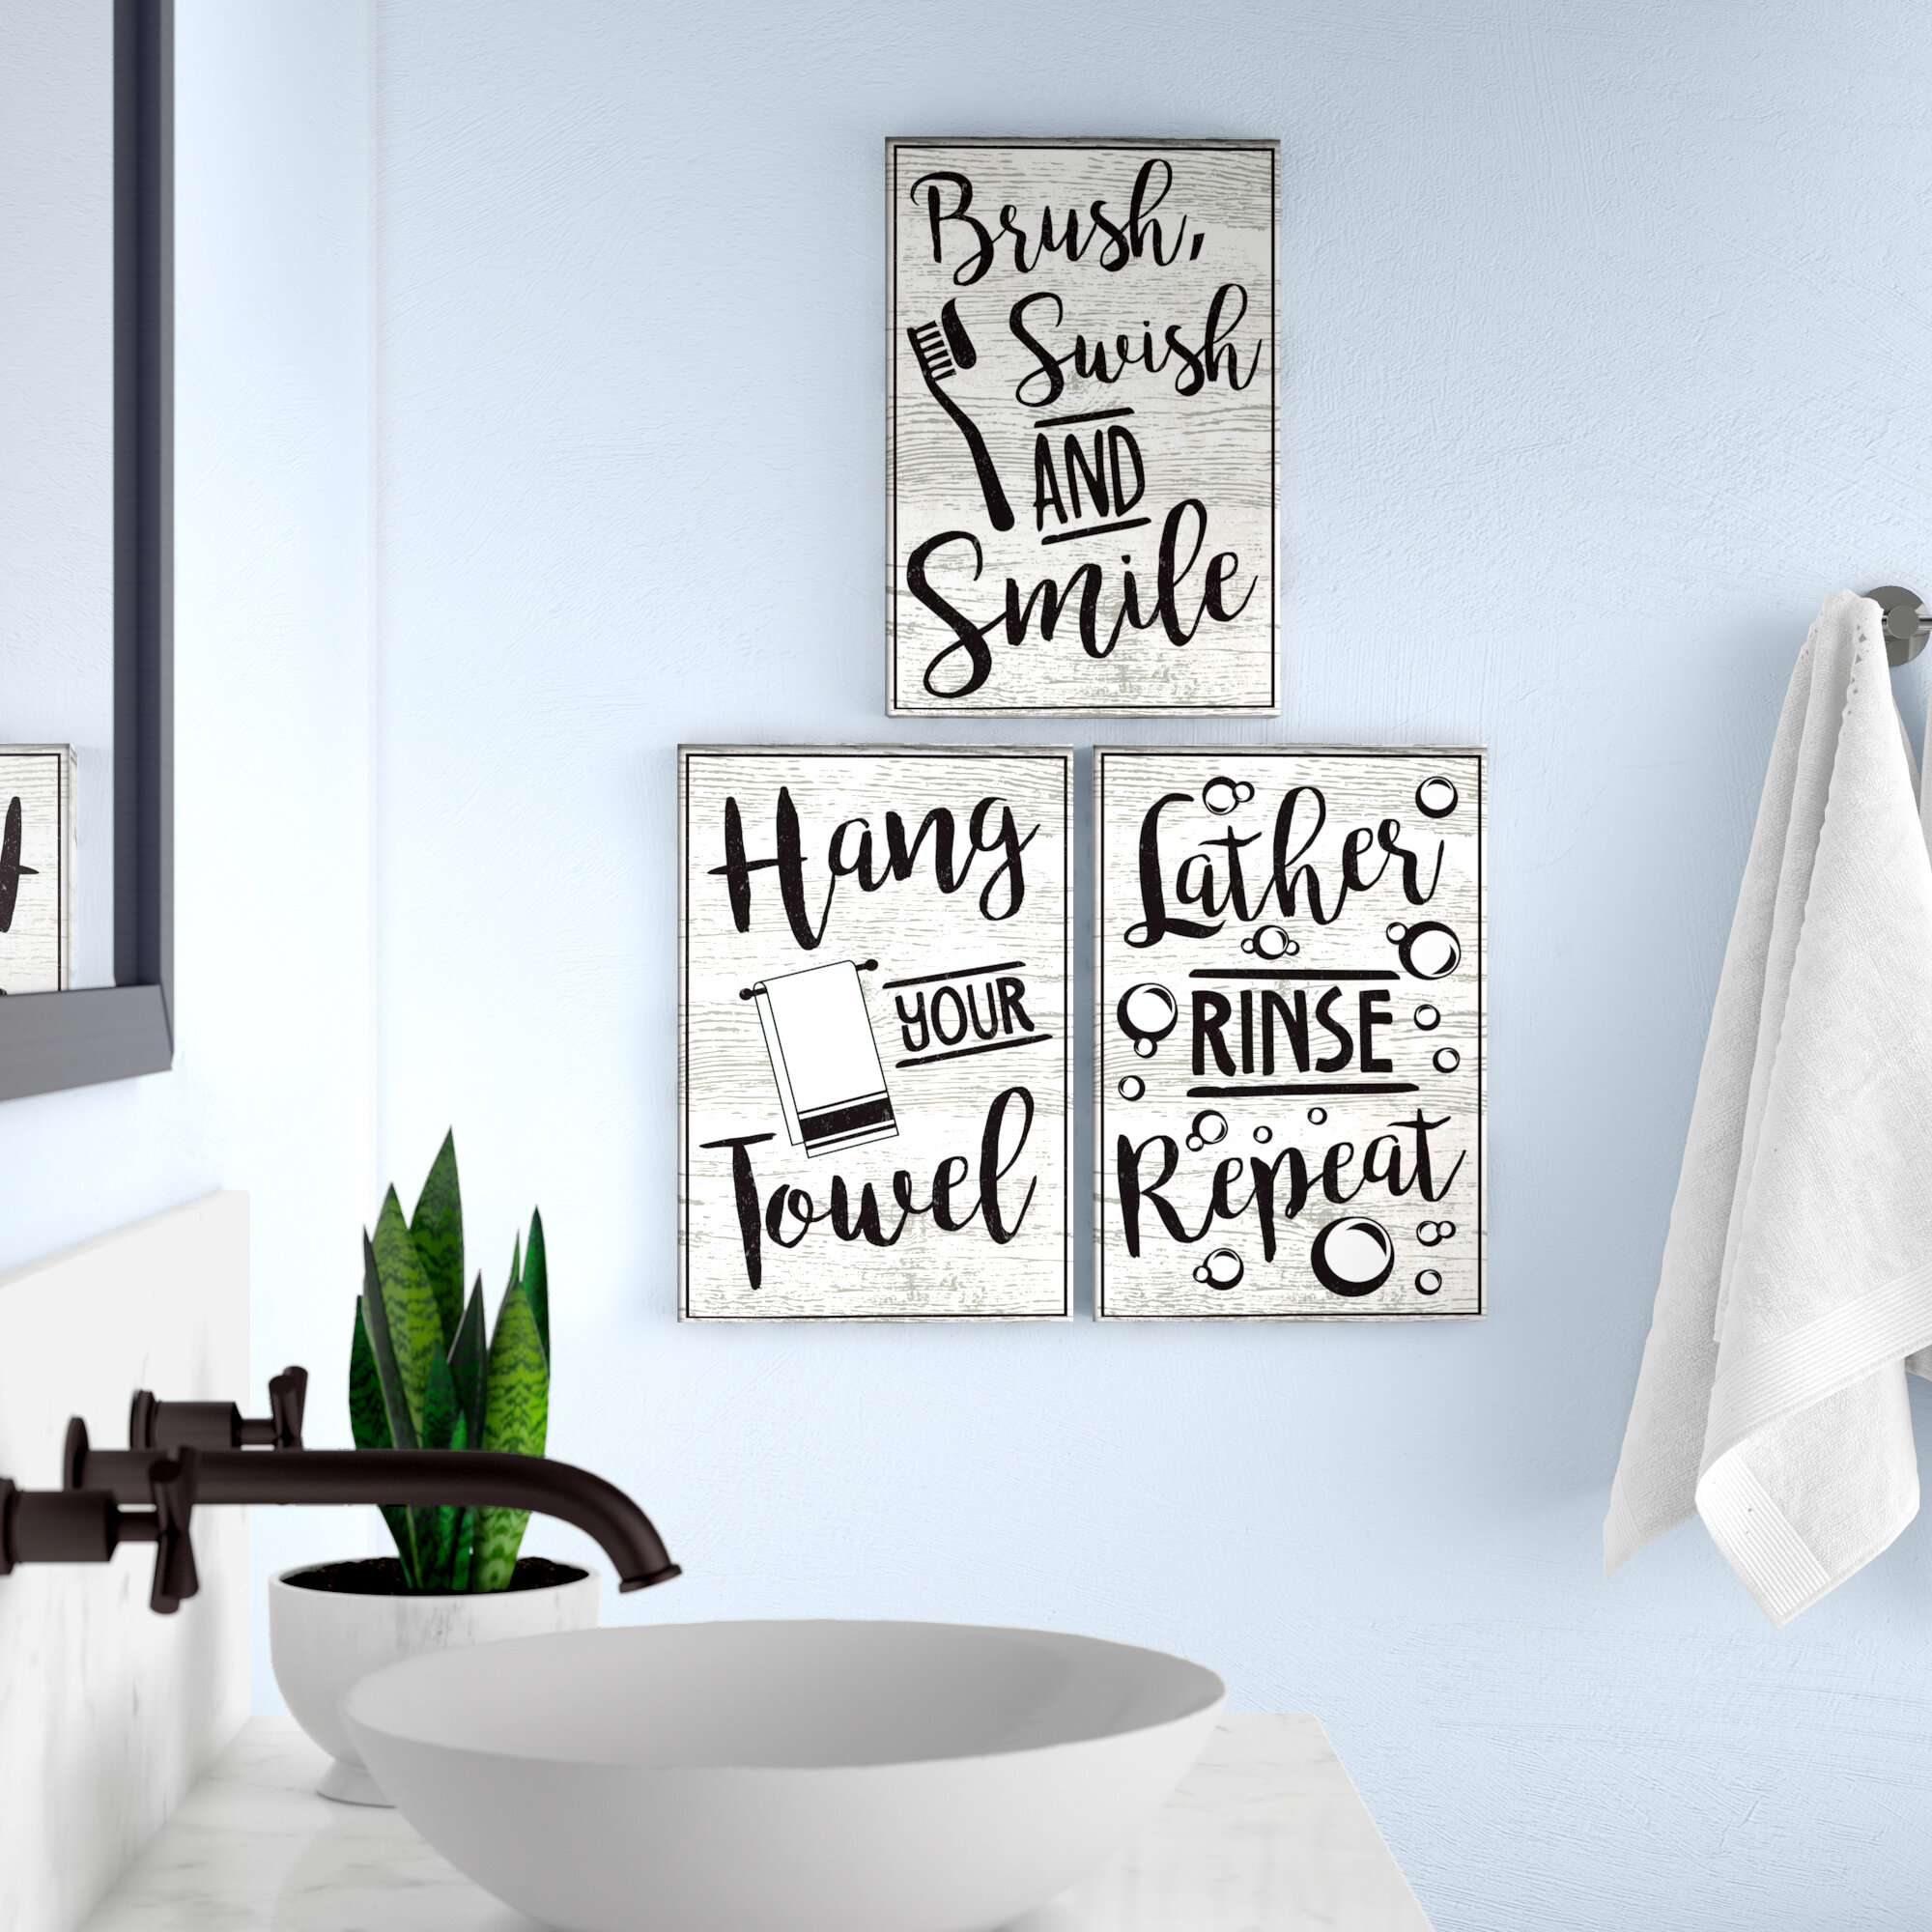 Winston Porter Lather Rinse Repeat Hang Your Towel And Brush Swish Smile 3 Piece Textual Art Set Reviews Wayfair